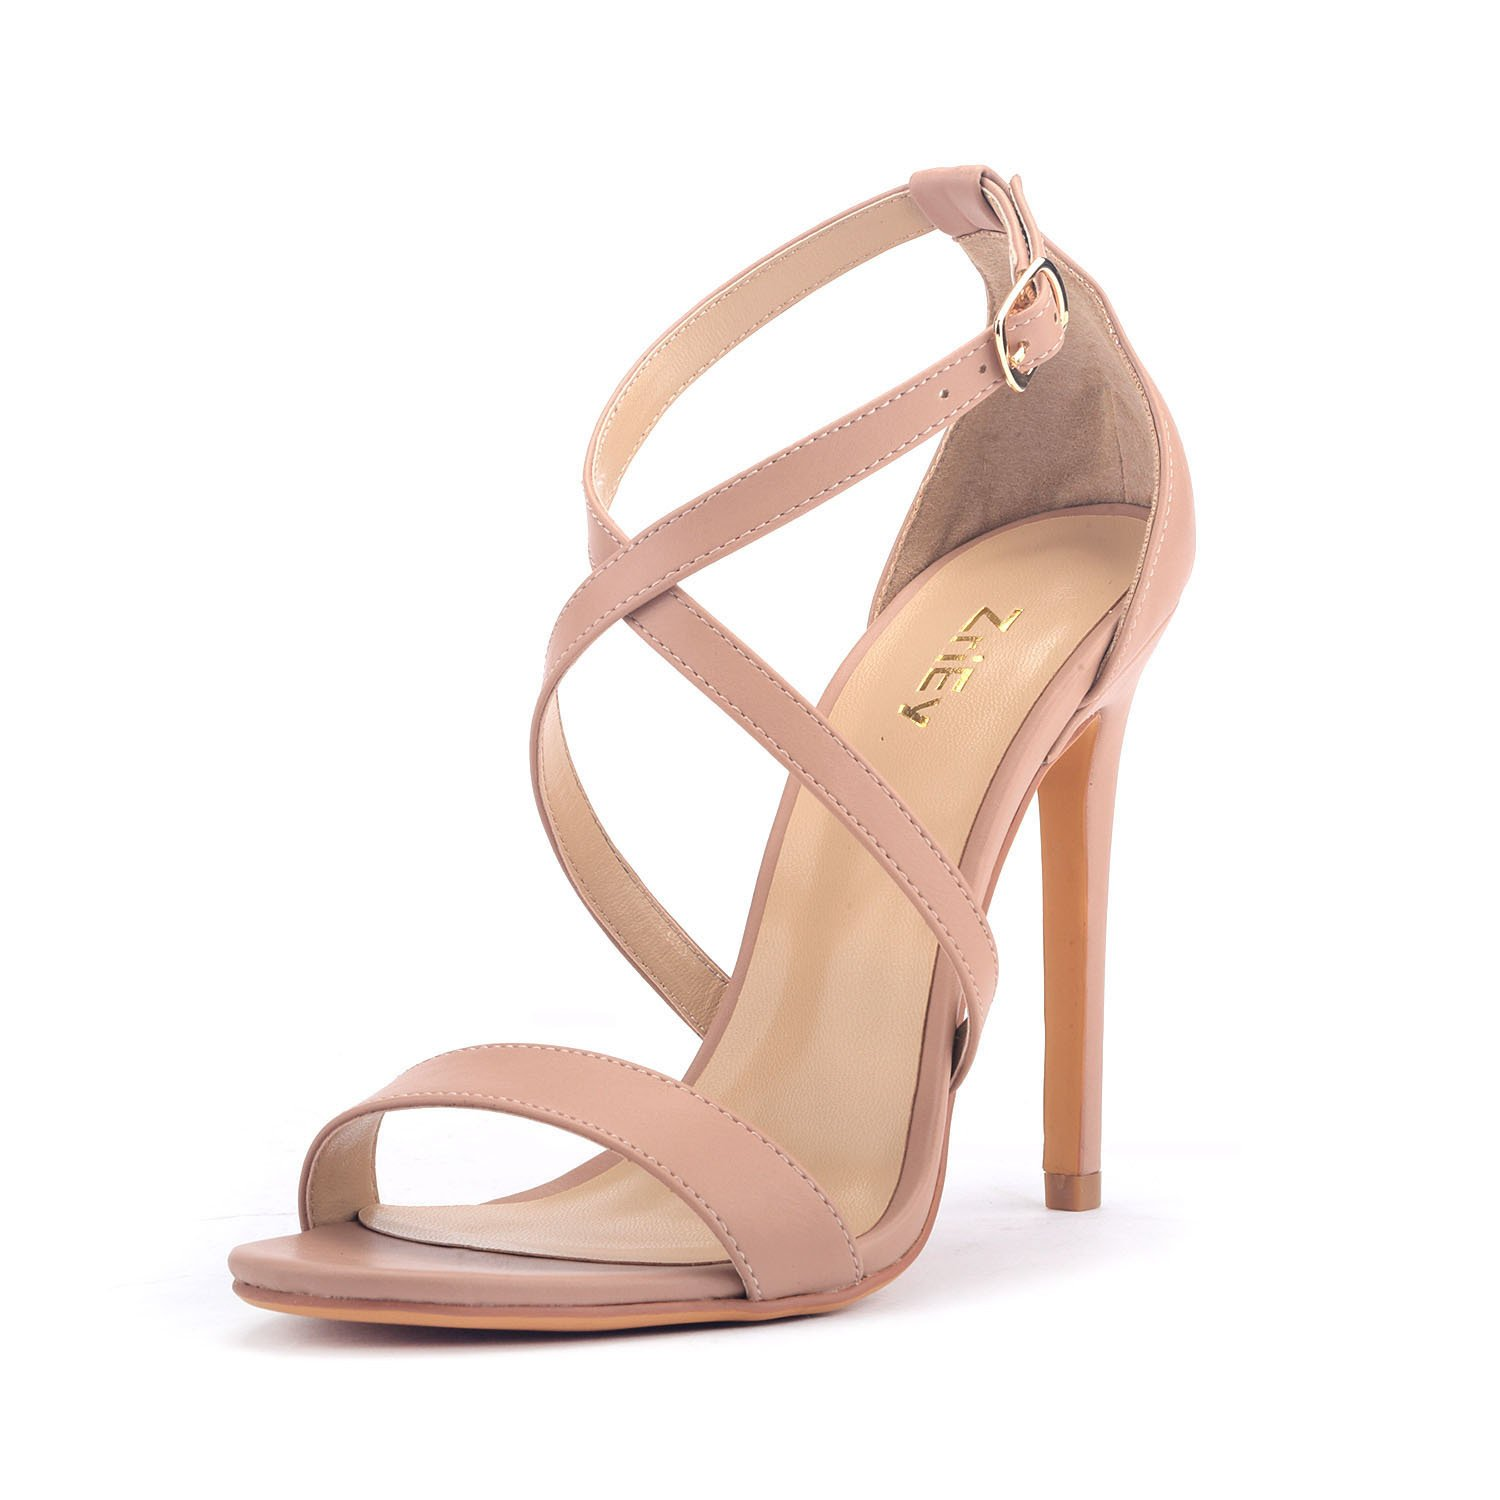 ZriEy Women Stiletto Sandals Cross Strappy High Heels 11CM Open Toe Bridal Wedding Party Shoes Nude Size 6